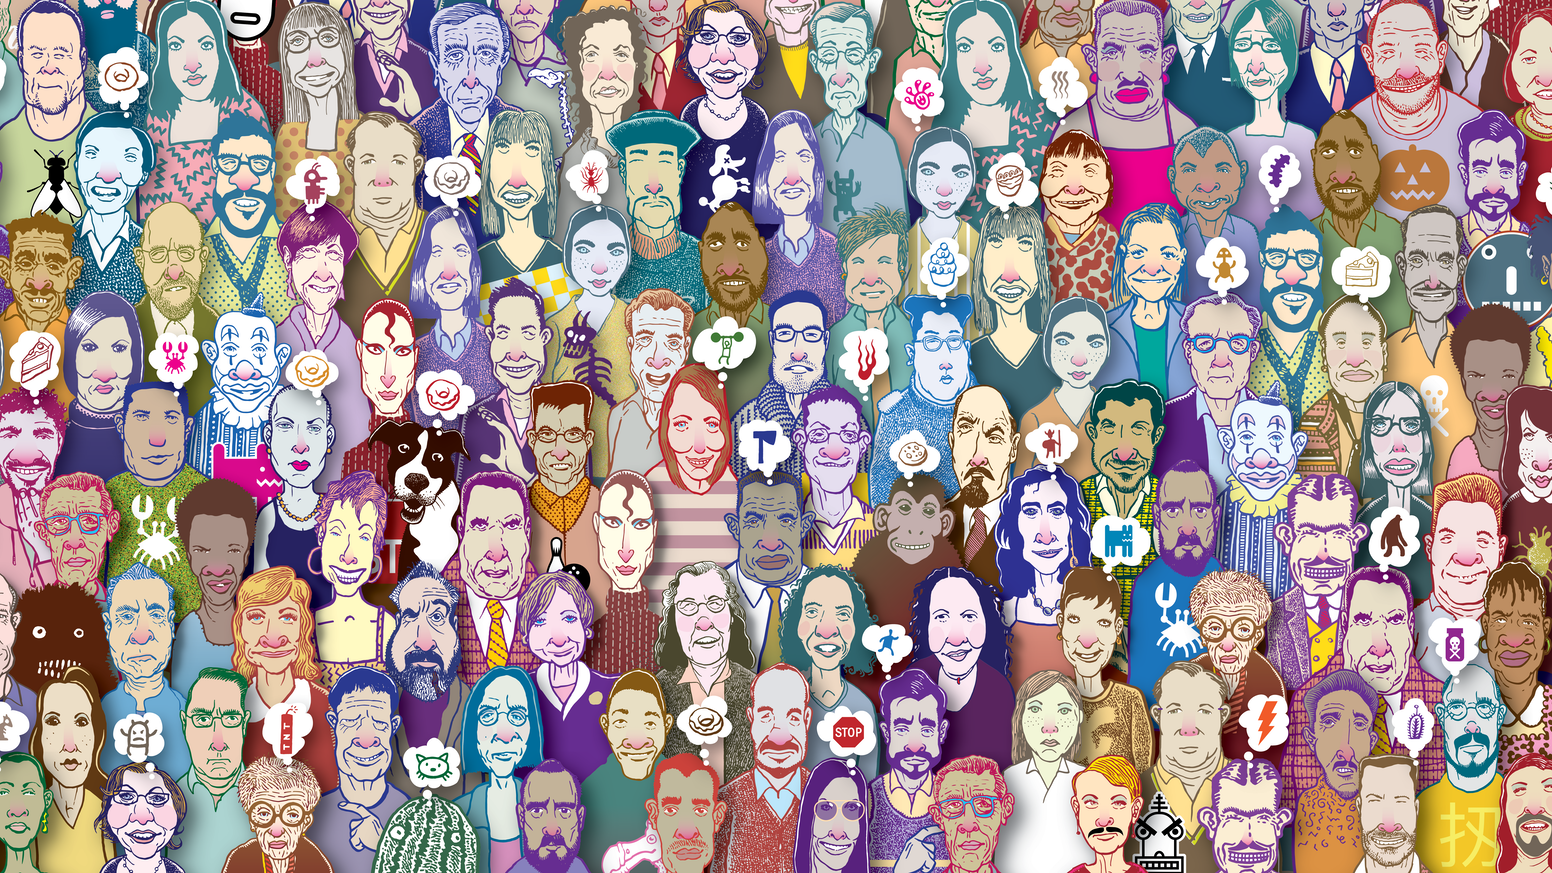 Can you find the twins, clones, look-alikes, and doppelgängers in this crowd of 300 faces from Don's notebook?